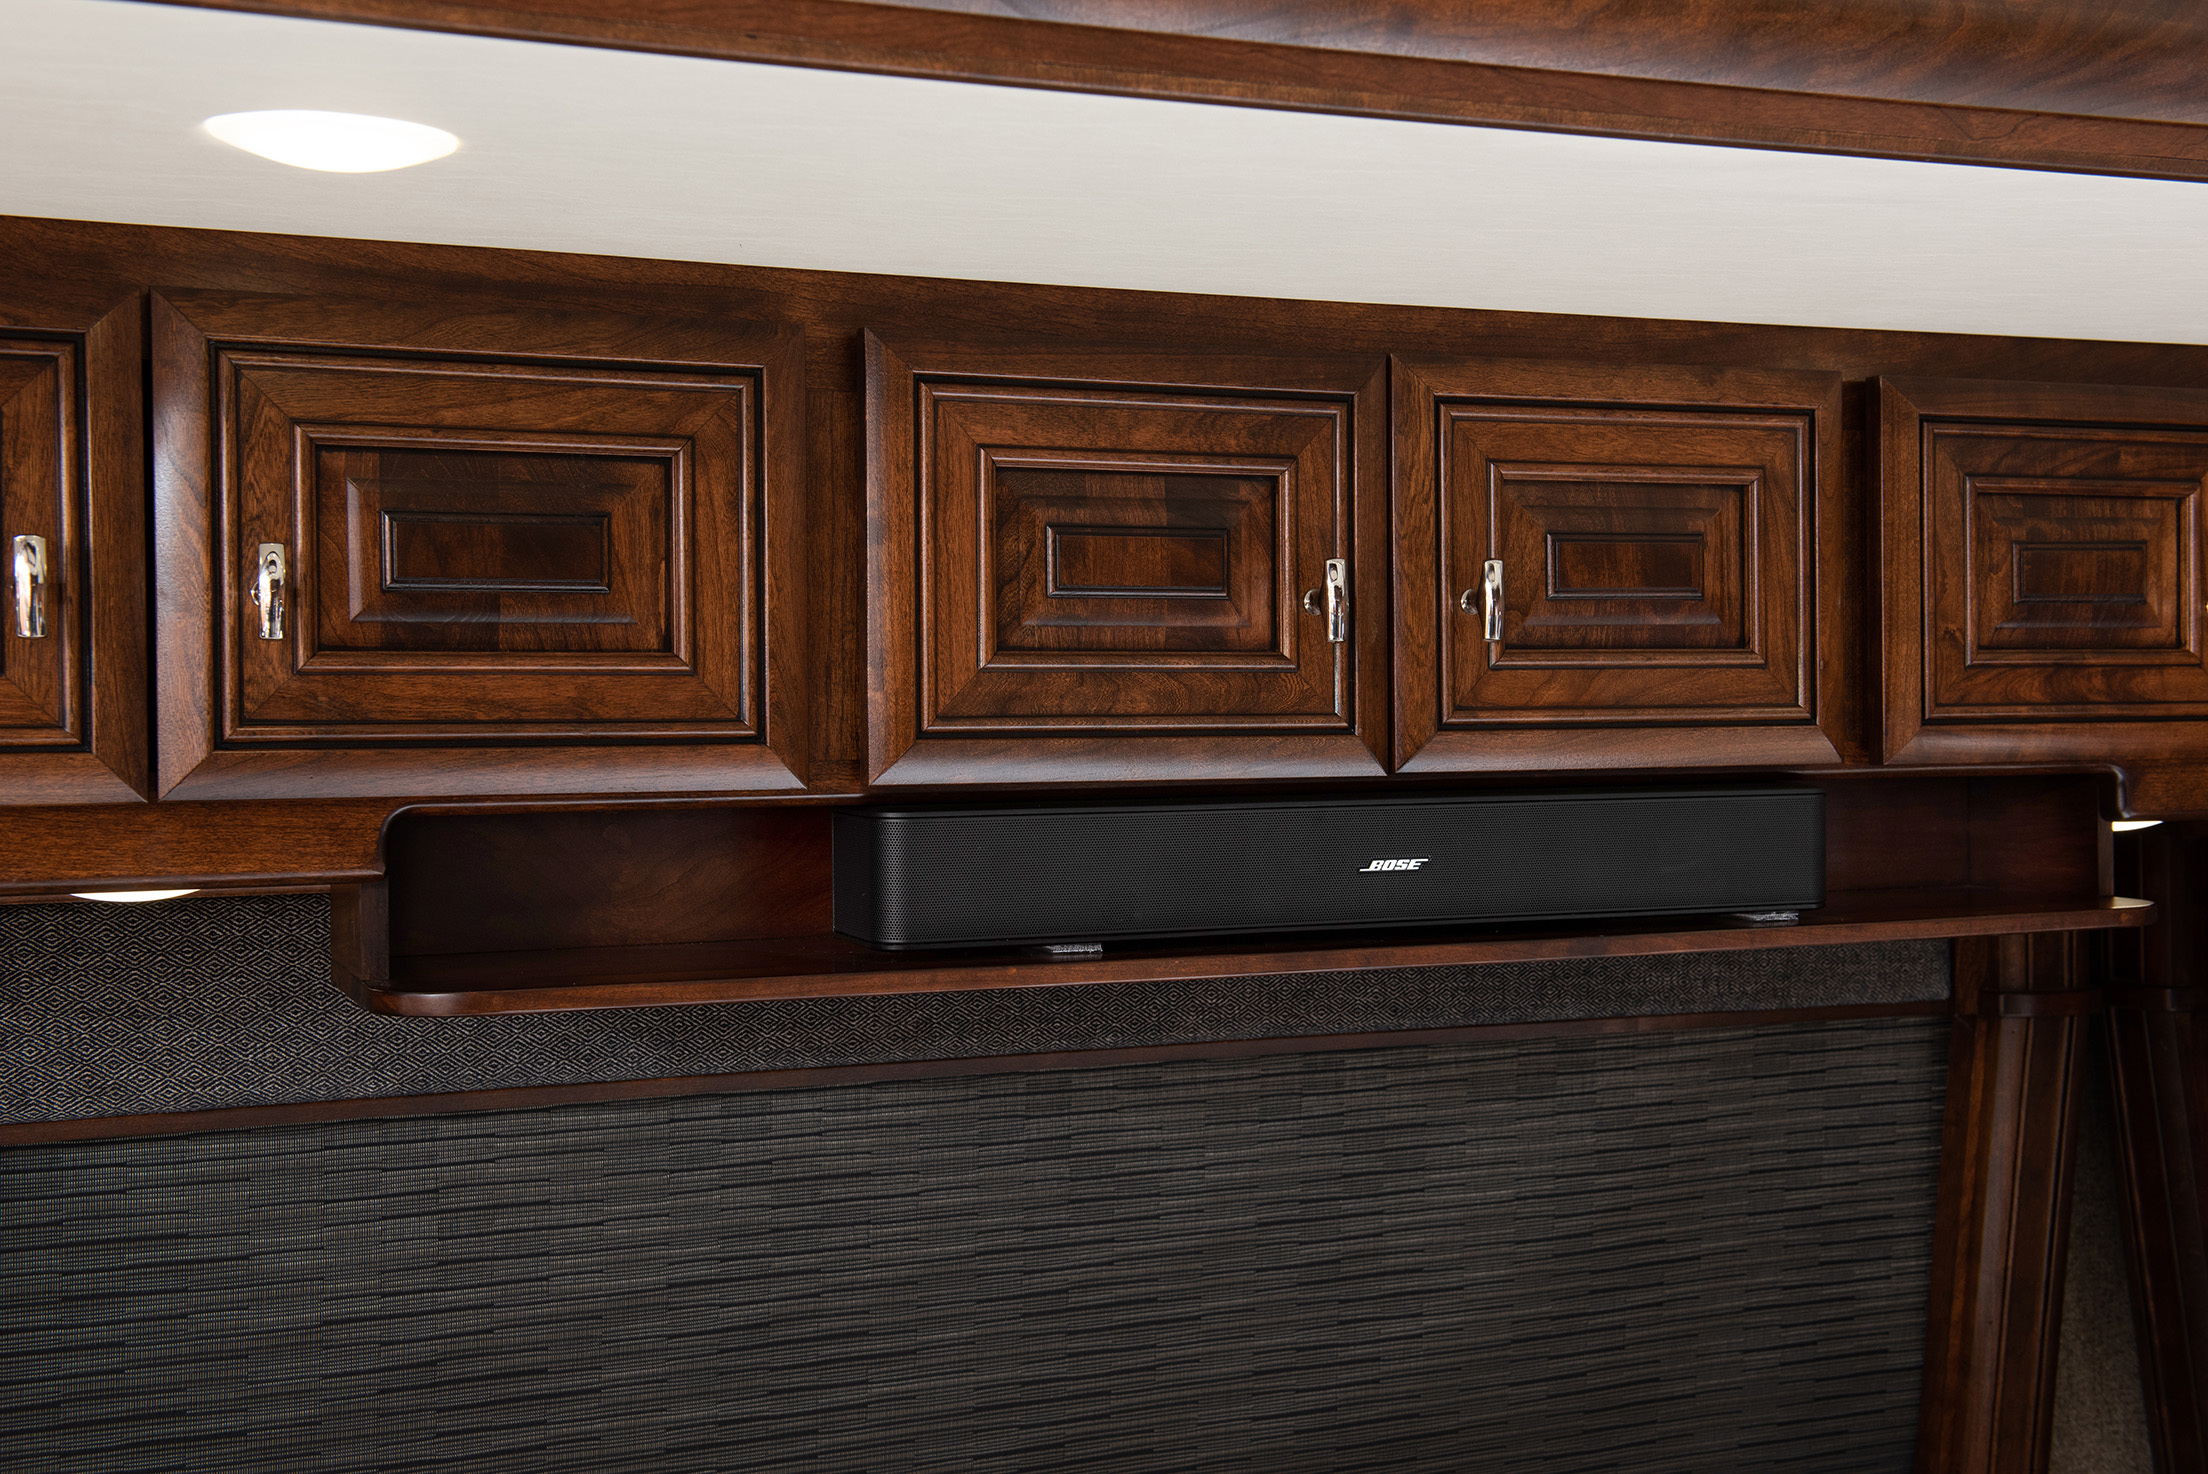 7 bose Soundbar Dream42 S Luxtruffle1513 MY19